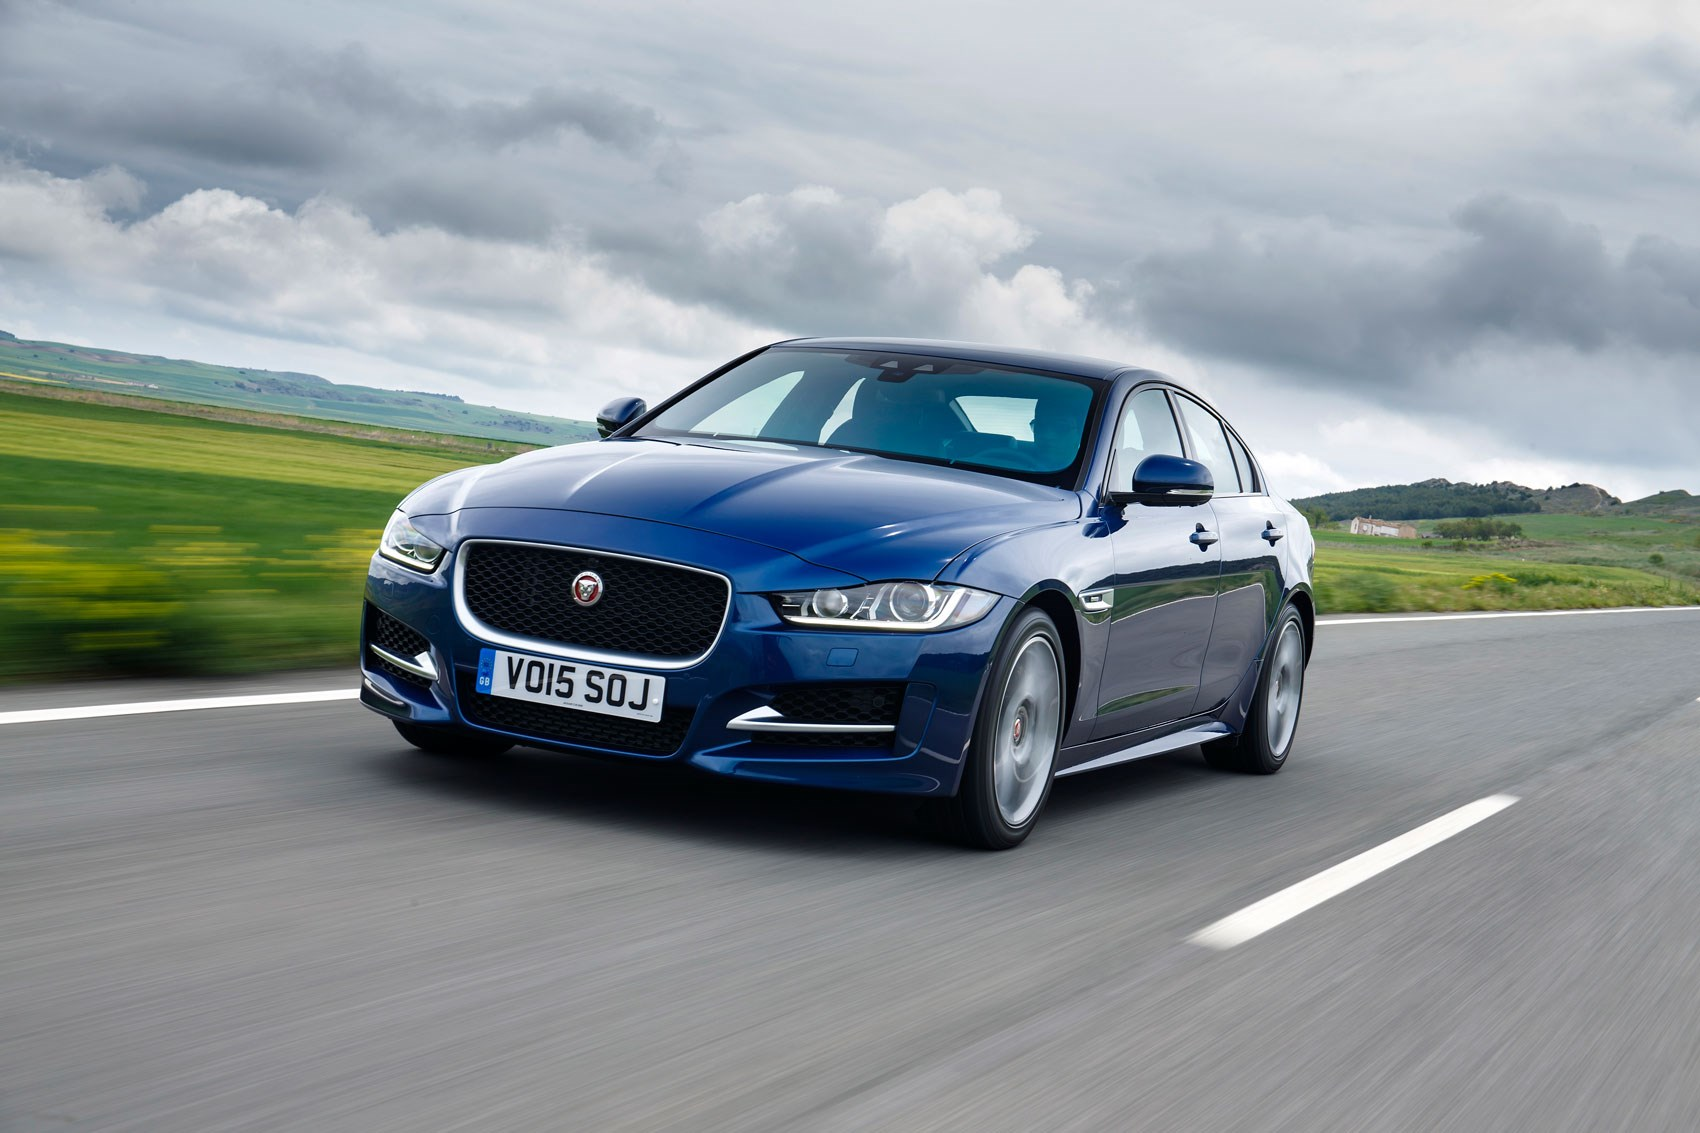 Used Tesla Model X For Sale >> Jaguar XE 2.0 D 163 R-Sport (2015) review | CAR Magazine